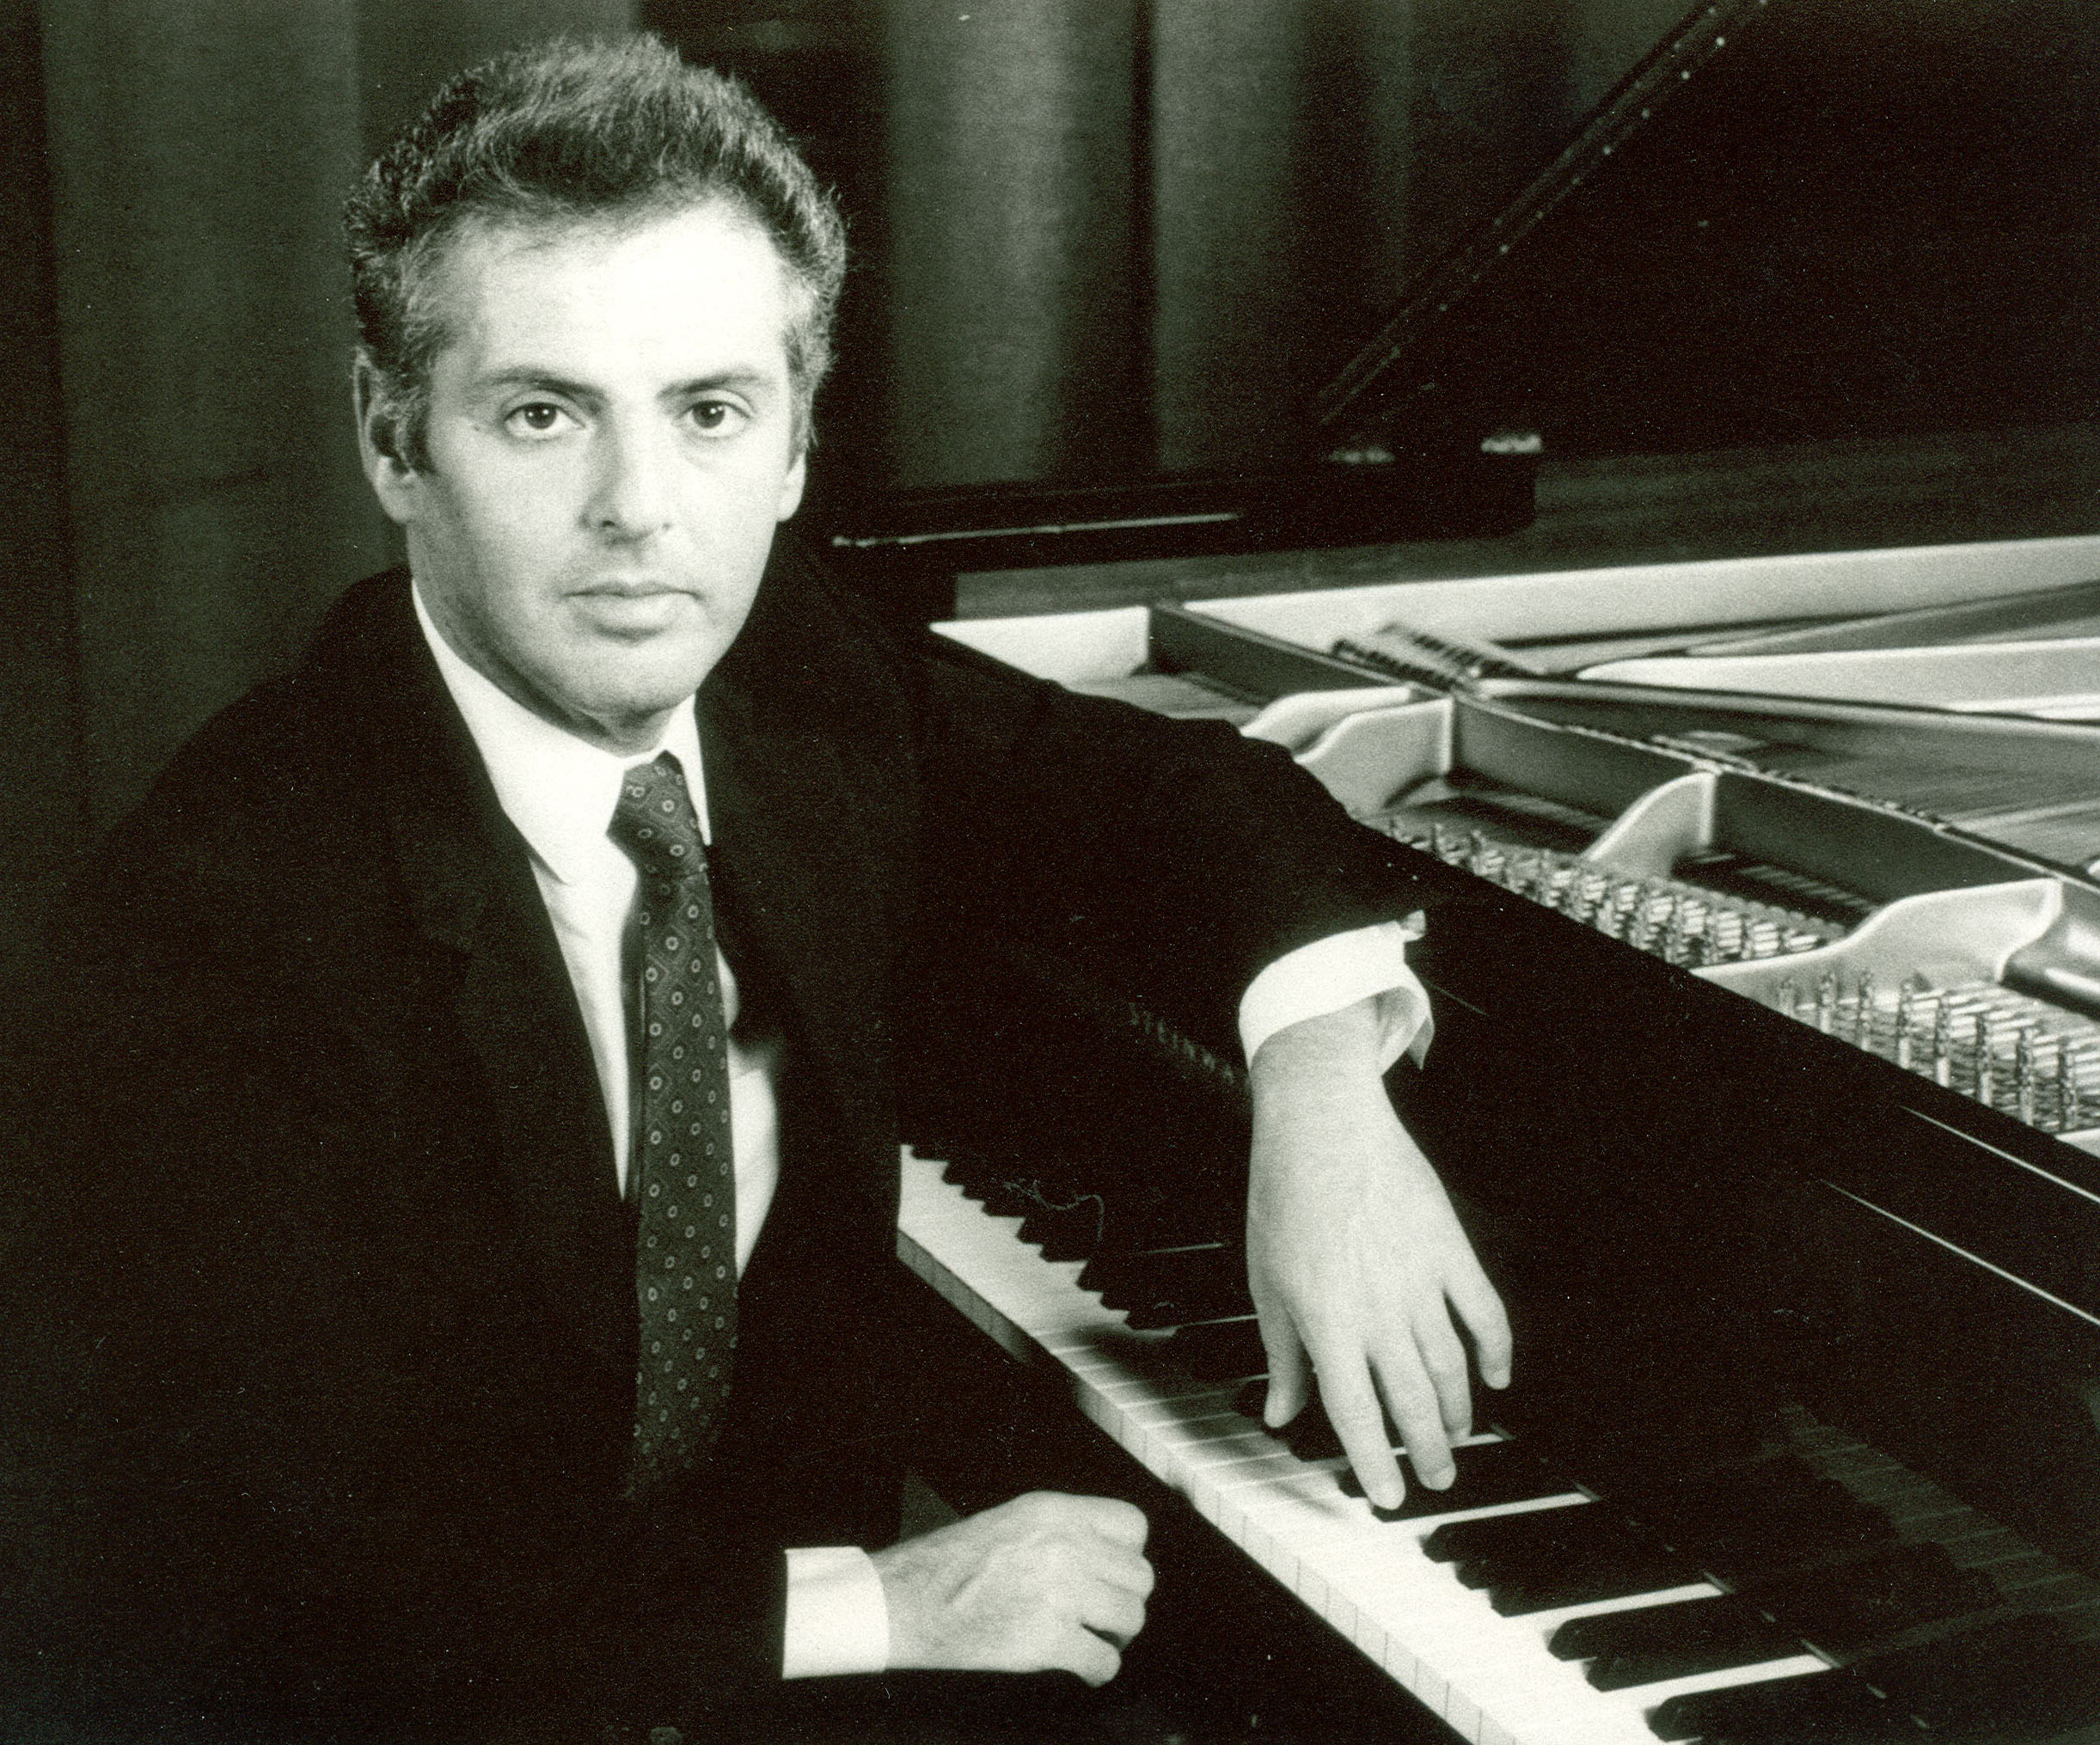 Daniel barenboim 75 chamber music from the archives for Piano diviso